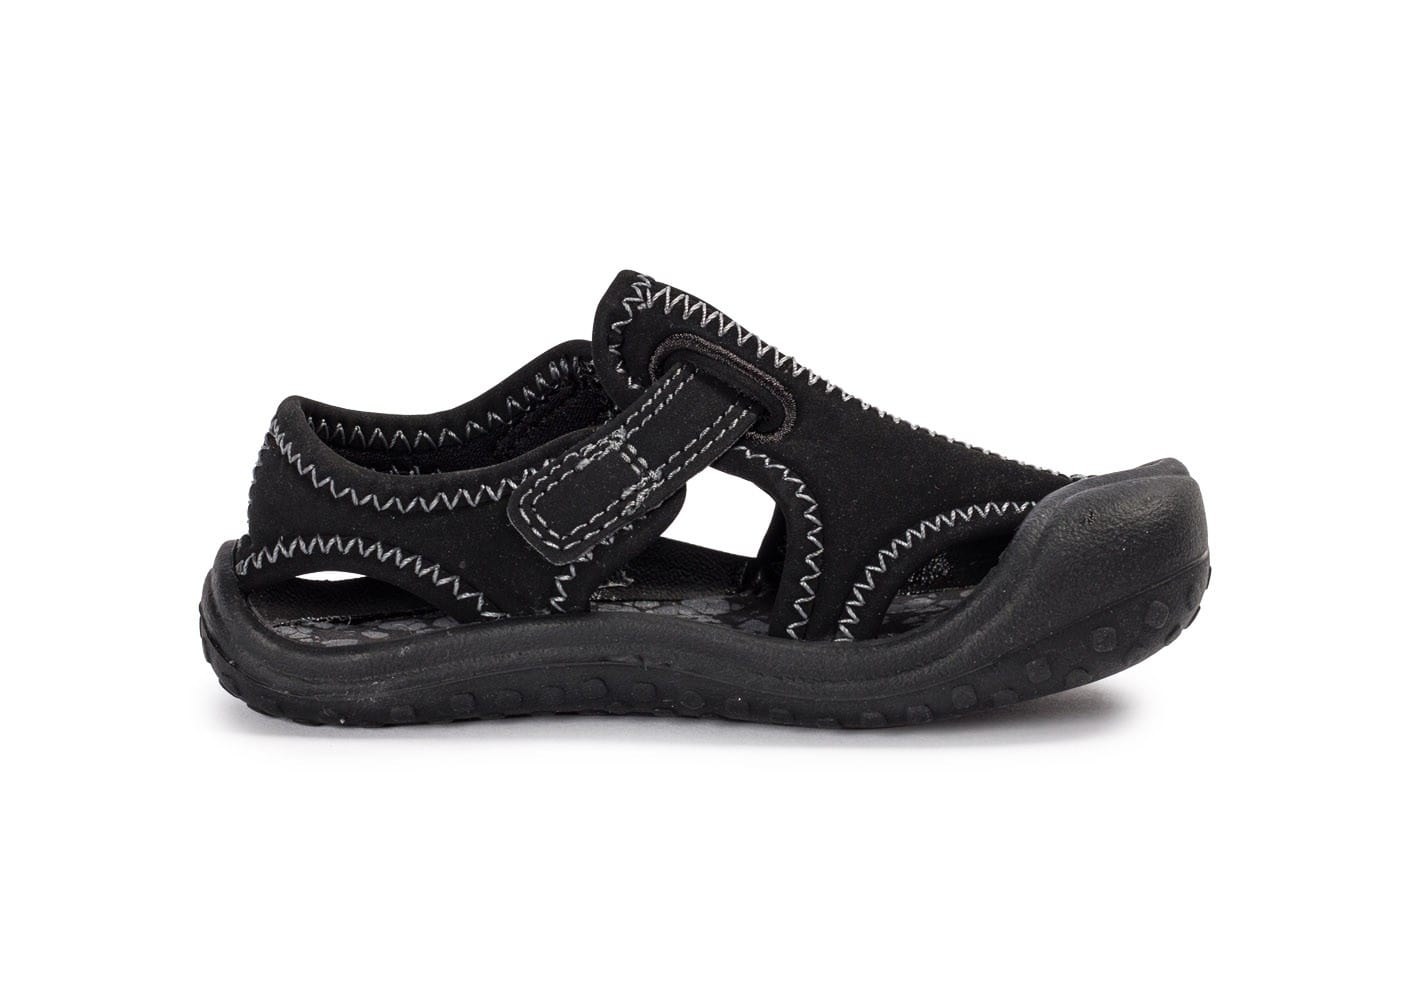 new style 44150 036d7 ... Chaussures Nike Sunray Protect noire vue dessous ...